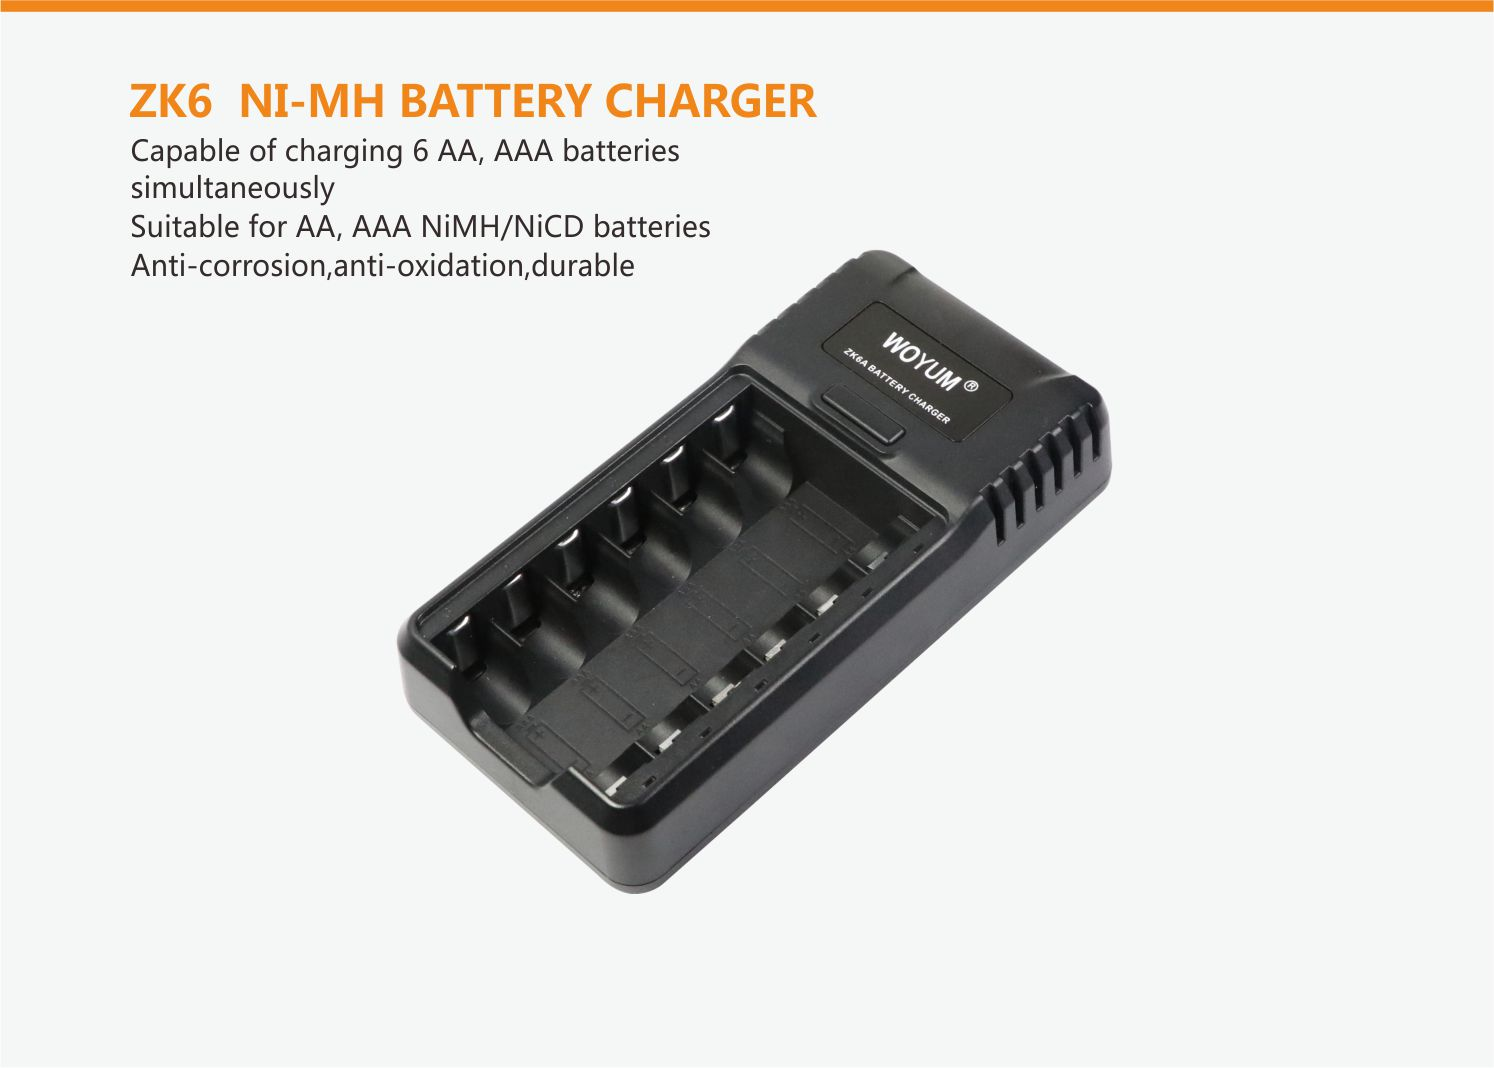 Woyum Top battery charger reviews Suppliers for Ni-MH-2